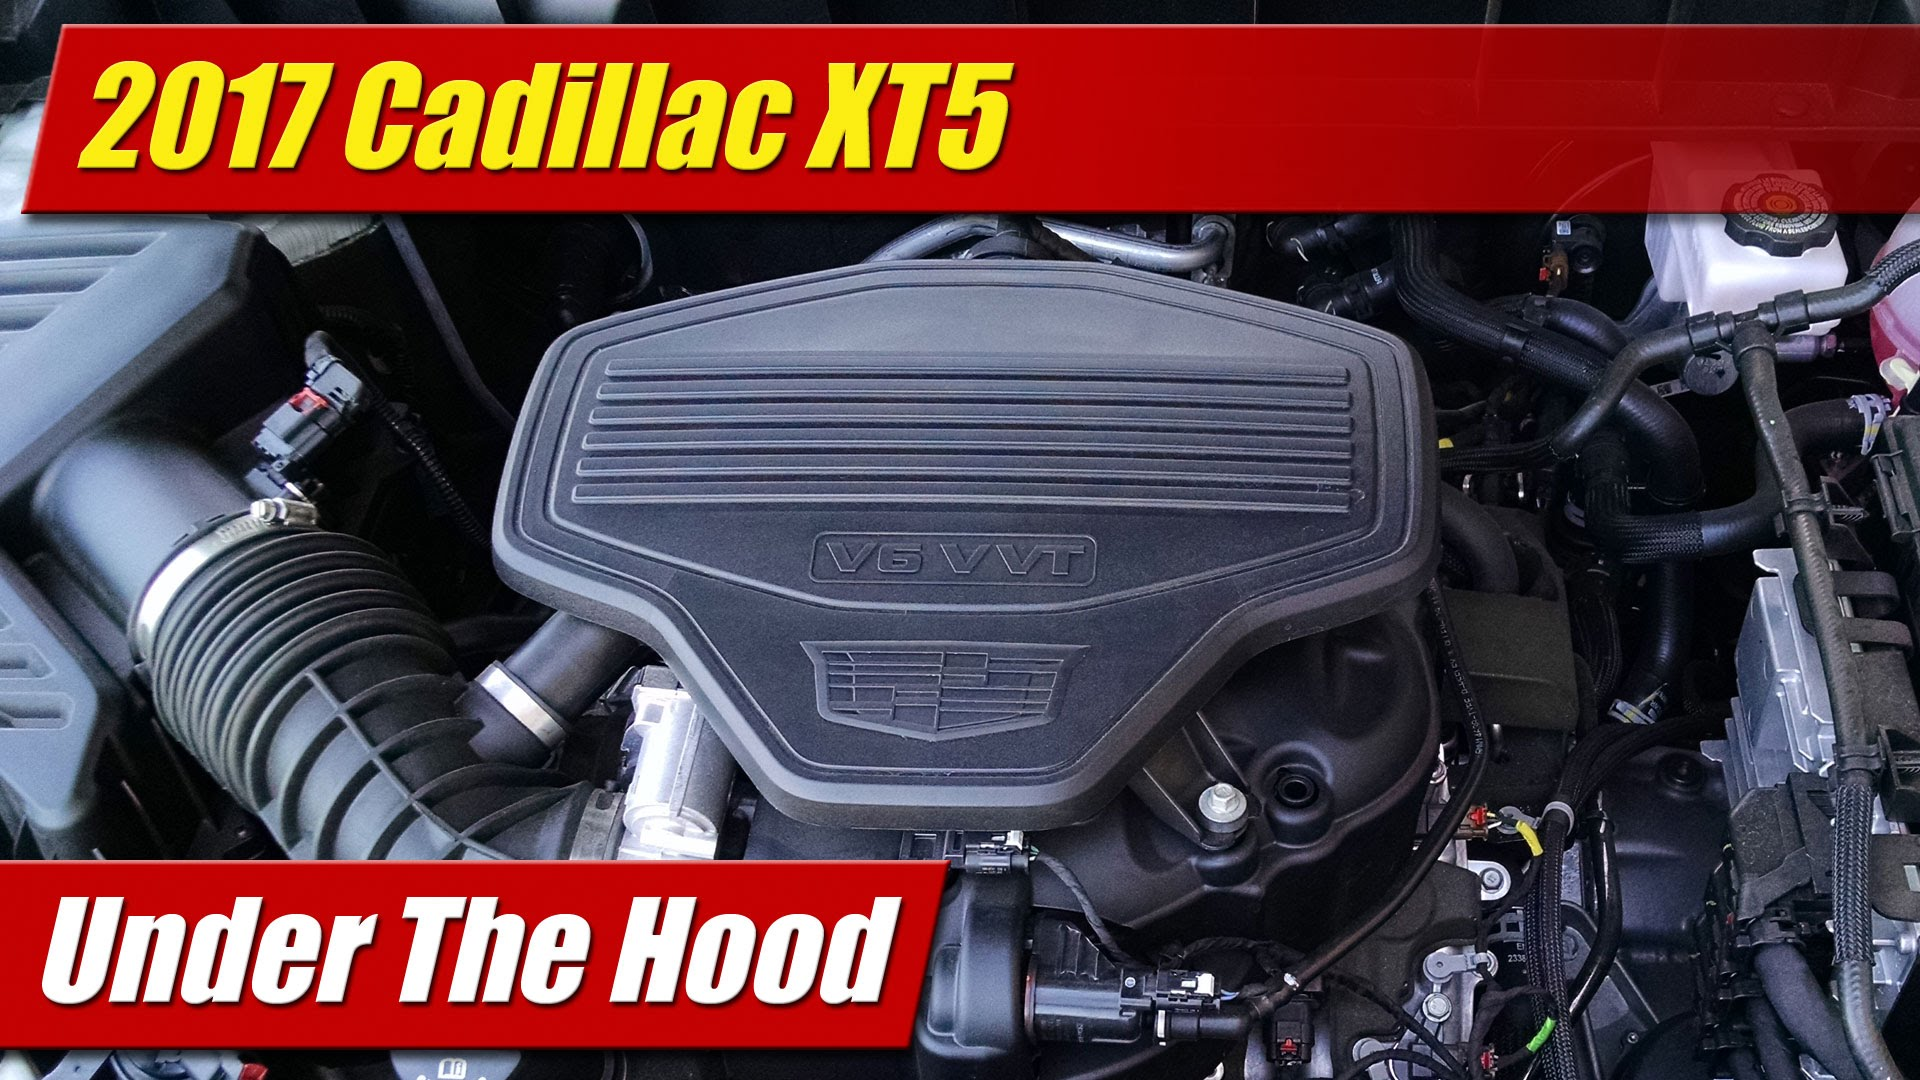 liter engine cts force review img image engines cadillac than brute more supercharged v